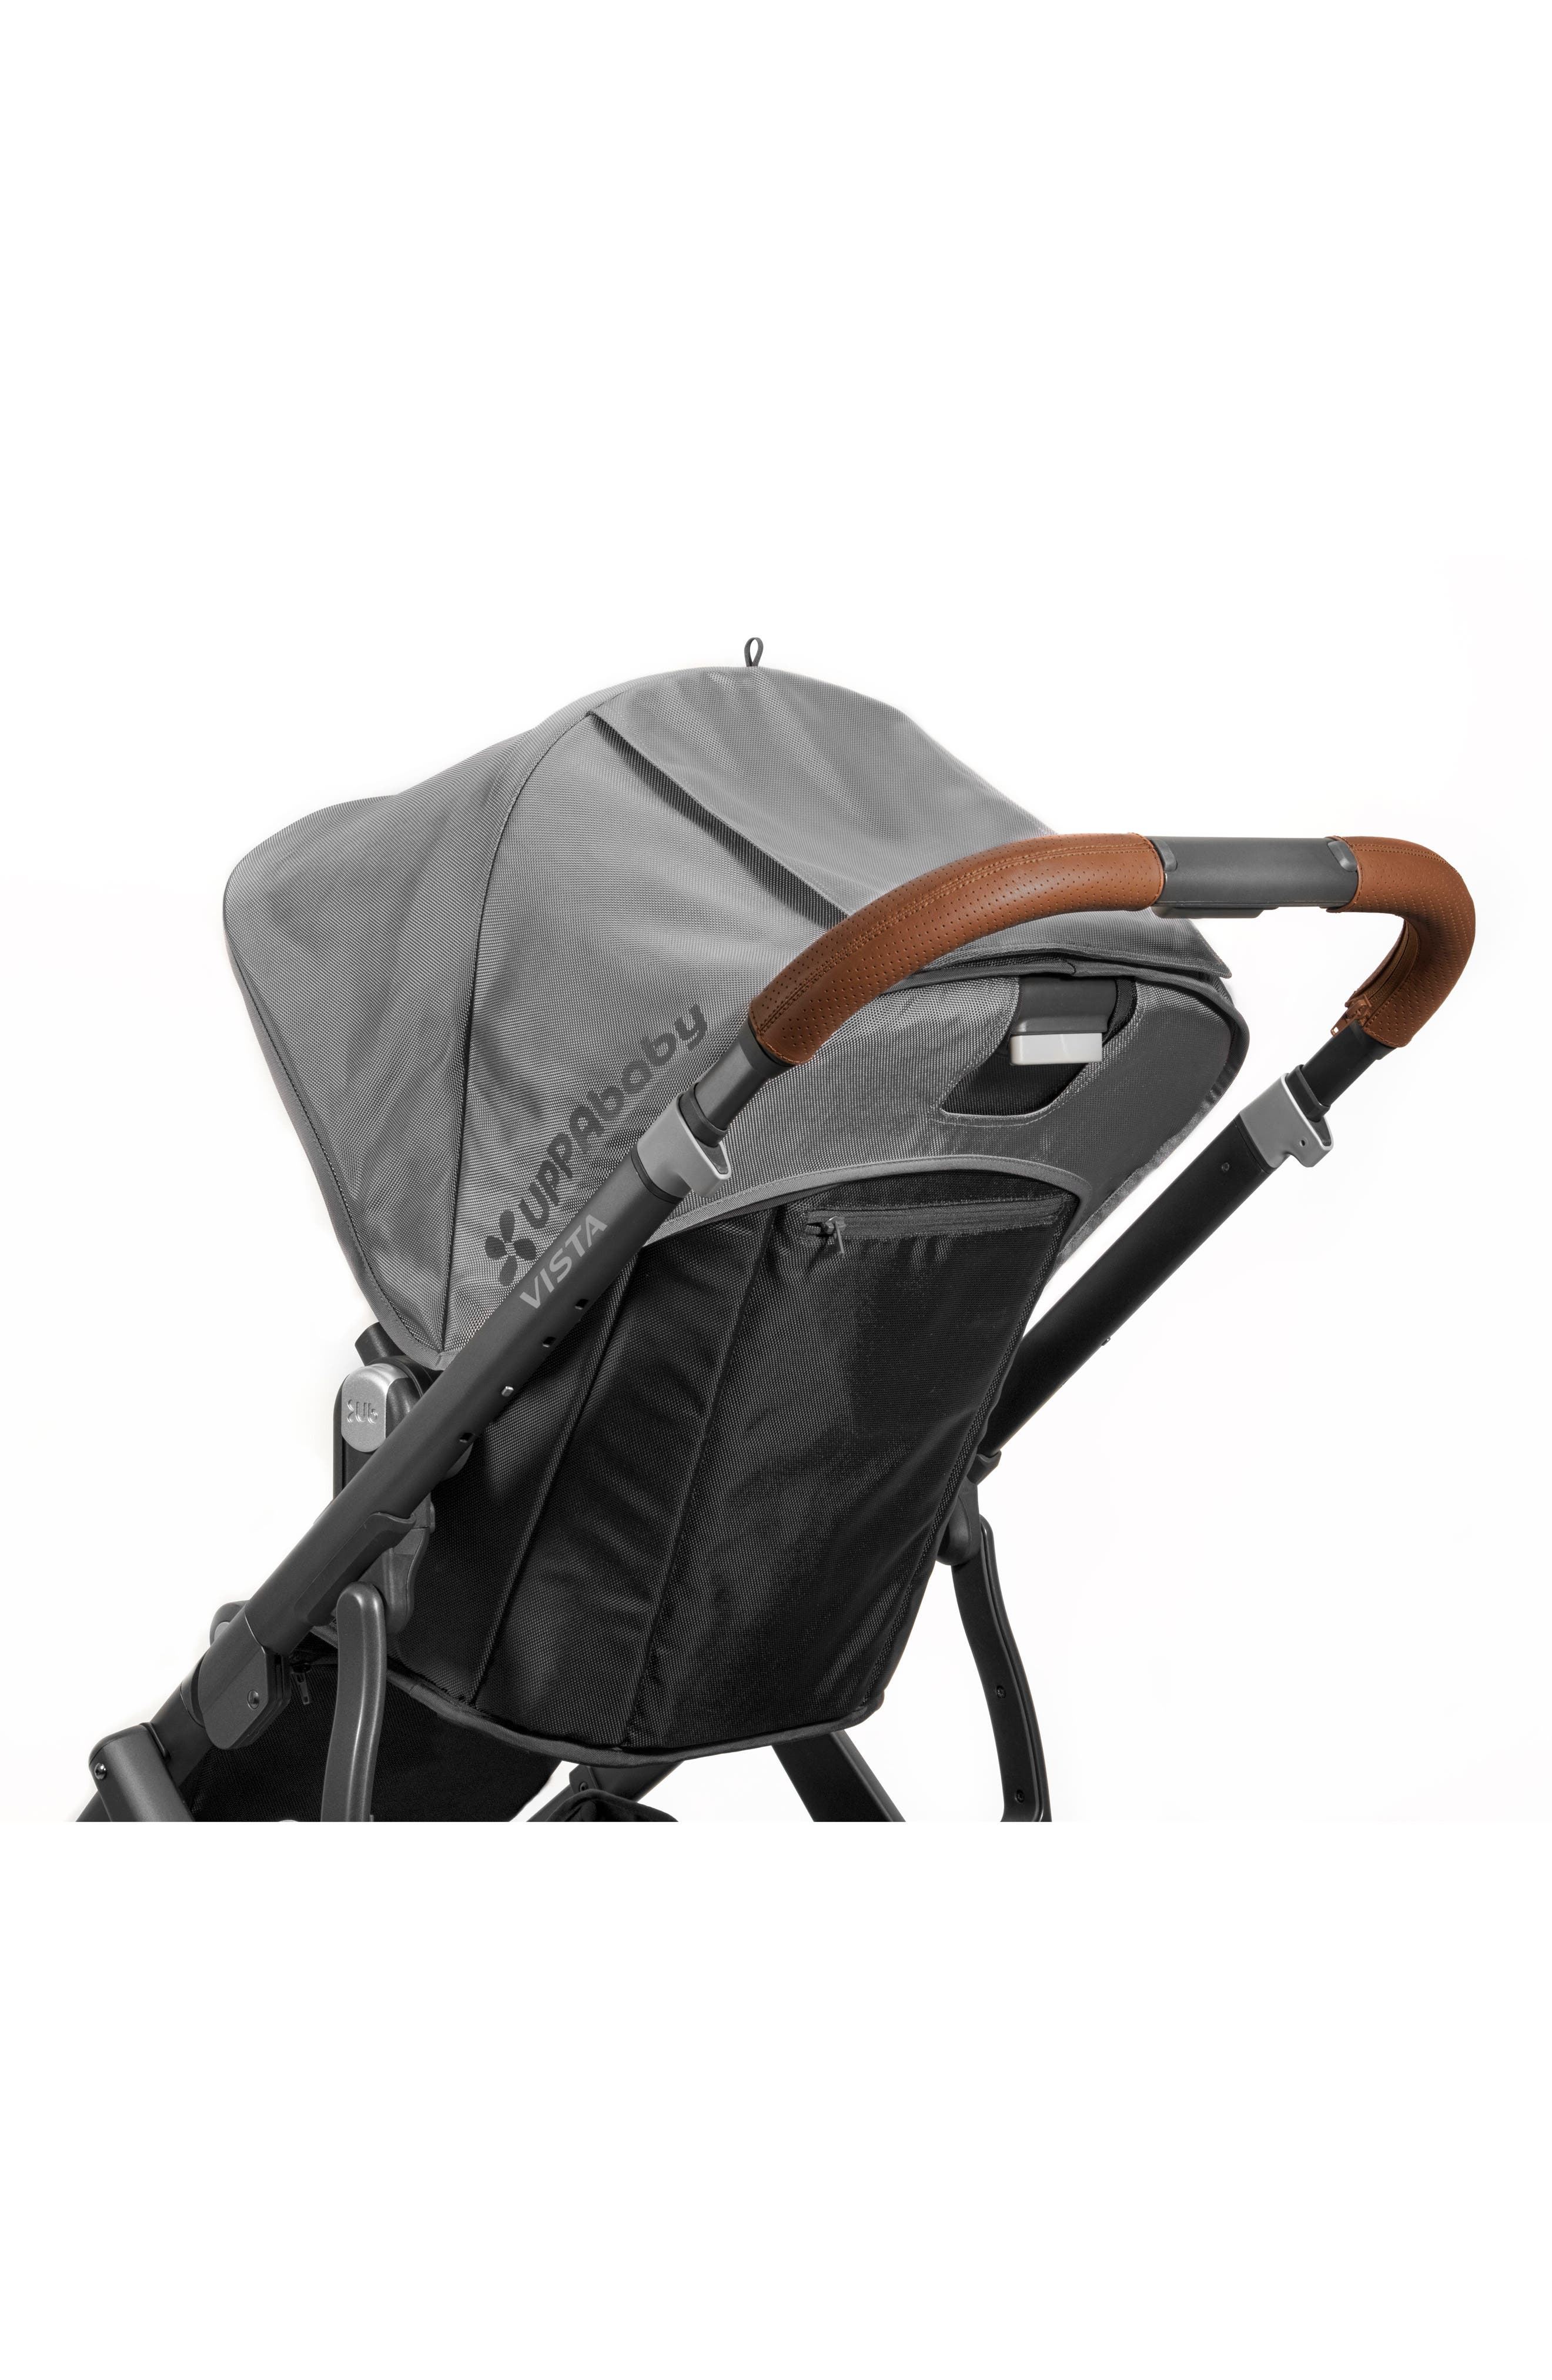 Alternate Image 1 Selected - UPPAbaby VISTA® Stroller Handlebar Cover